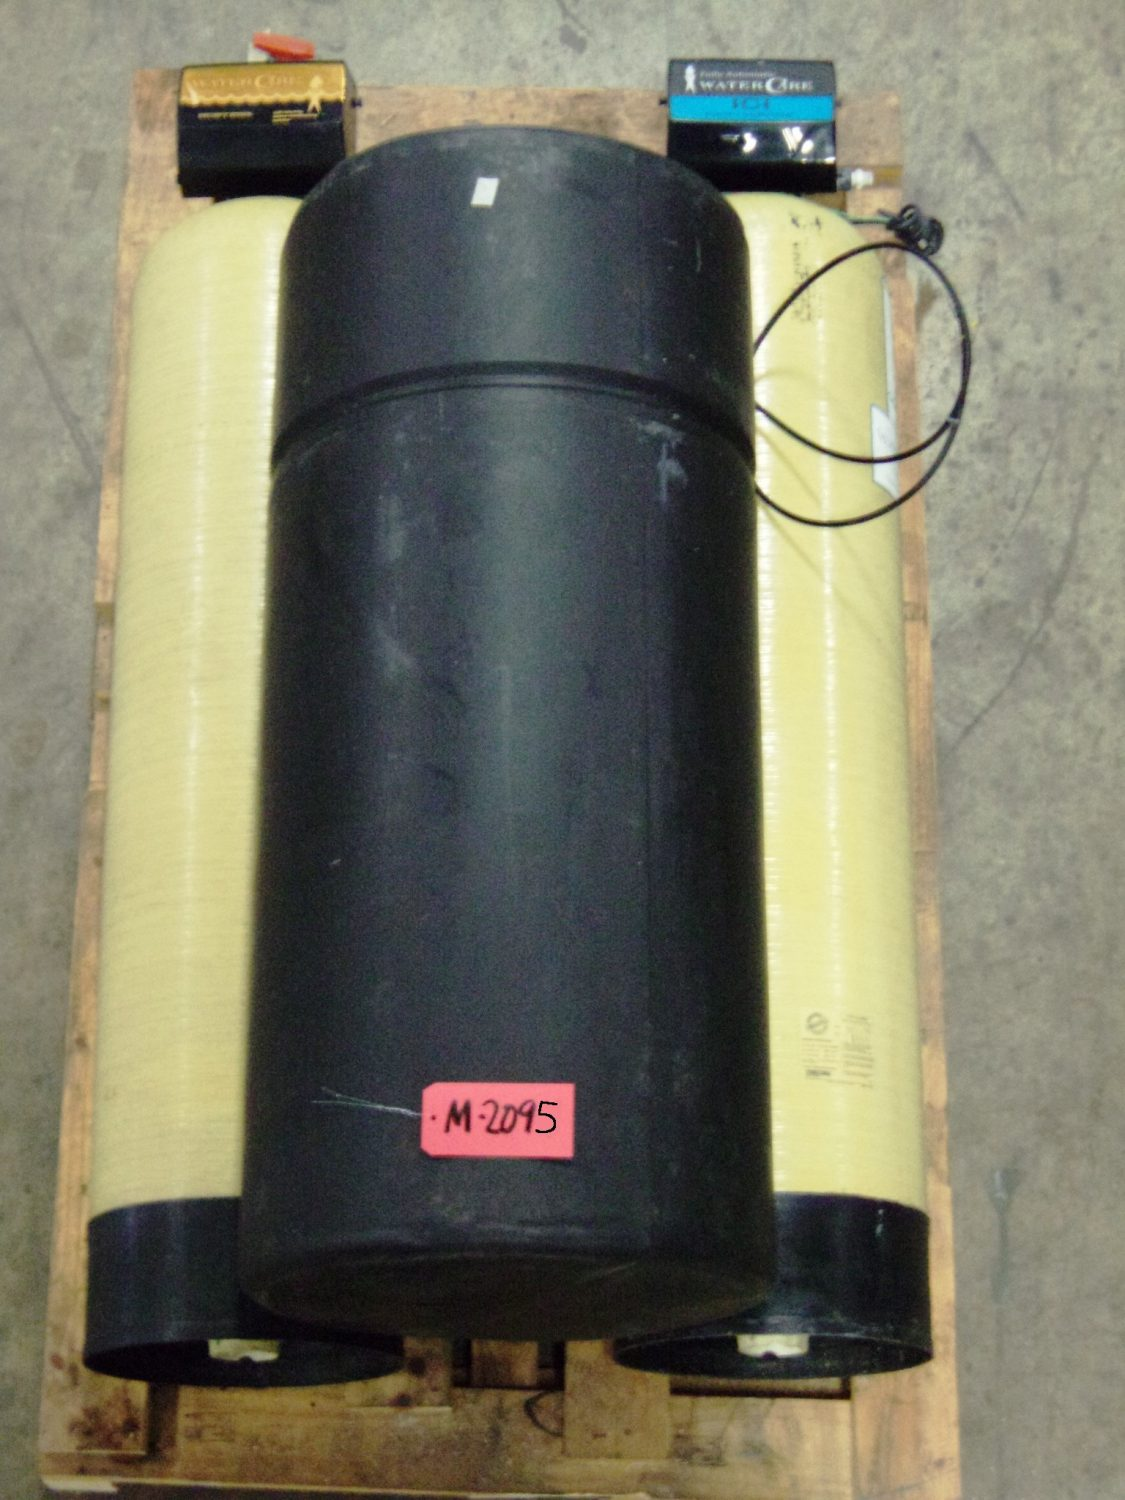 Used - Watercare Corp. RF-120/RF-C16 Water Softener/Carbon Filter-Misc. Equipment